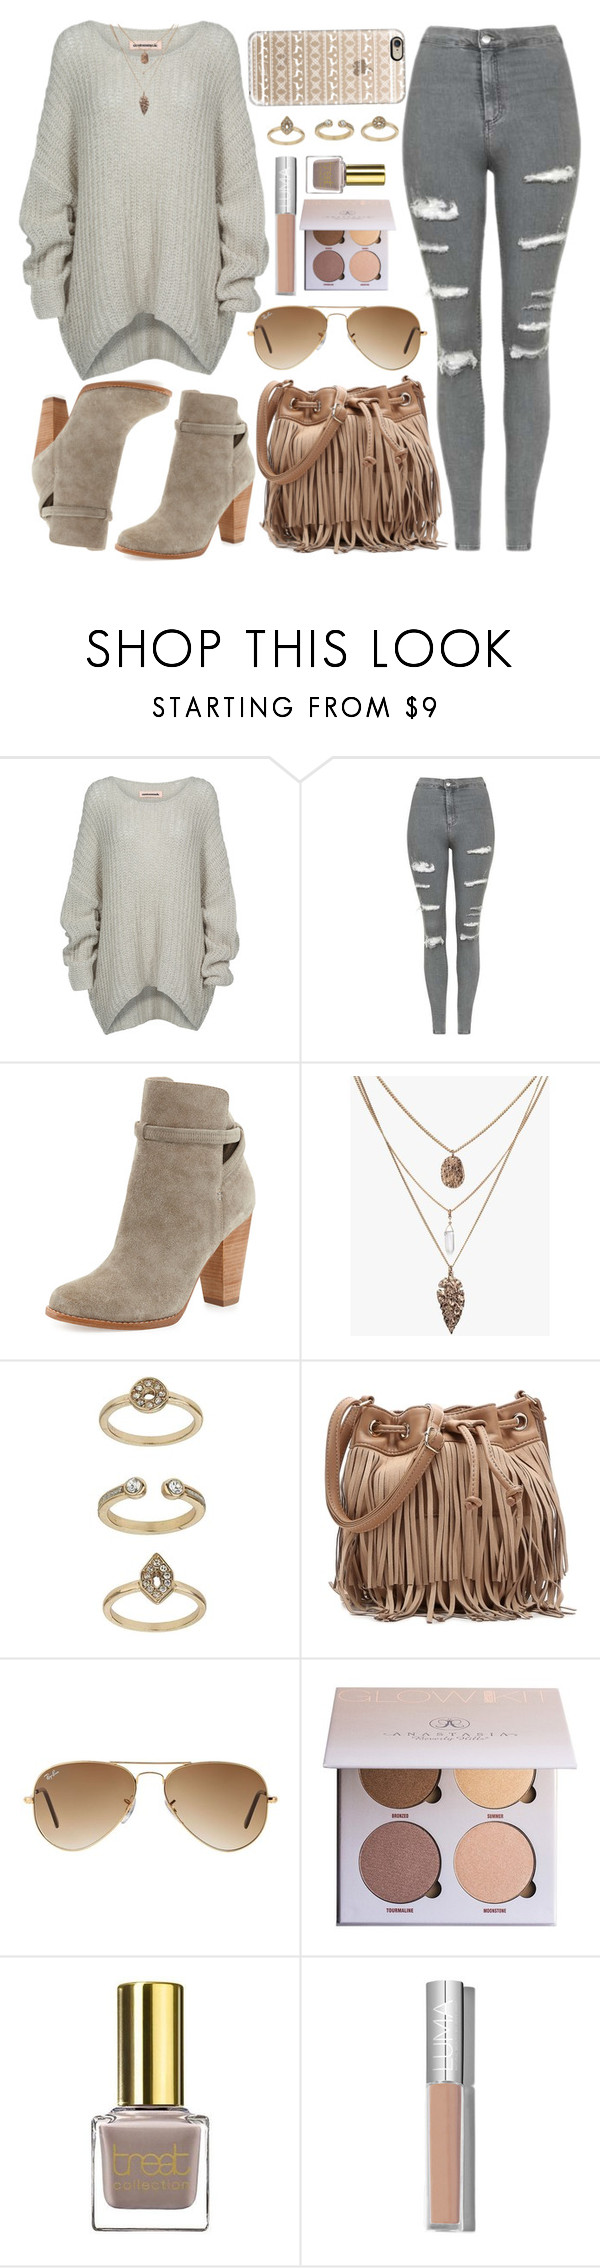 """""""Untitled #4096"""" by natalyasidunova ❤ liked on Polyvore featuring Bodhi, Topshop, Joie, Deux Lux, Ray-Ban, Anastasia Beverly Hills and Casetify"""